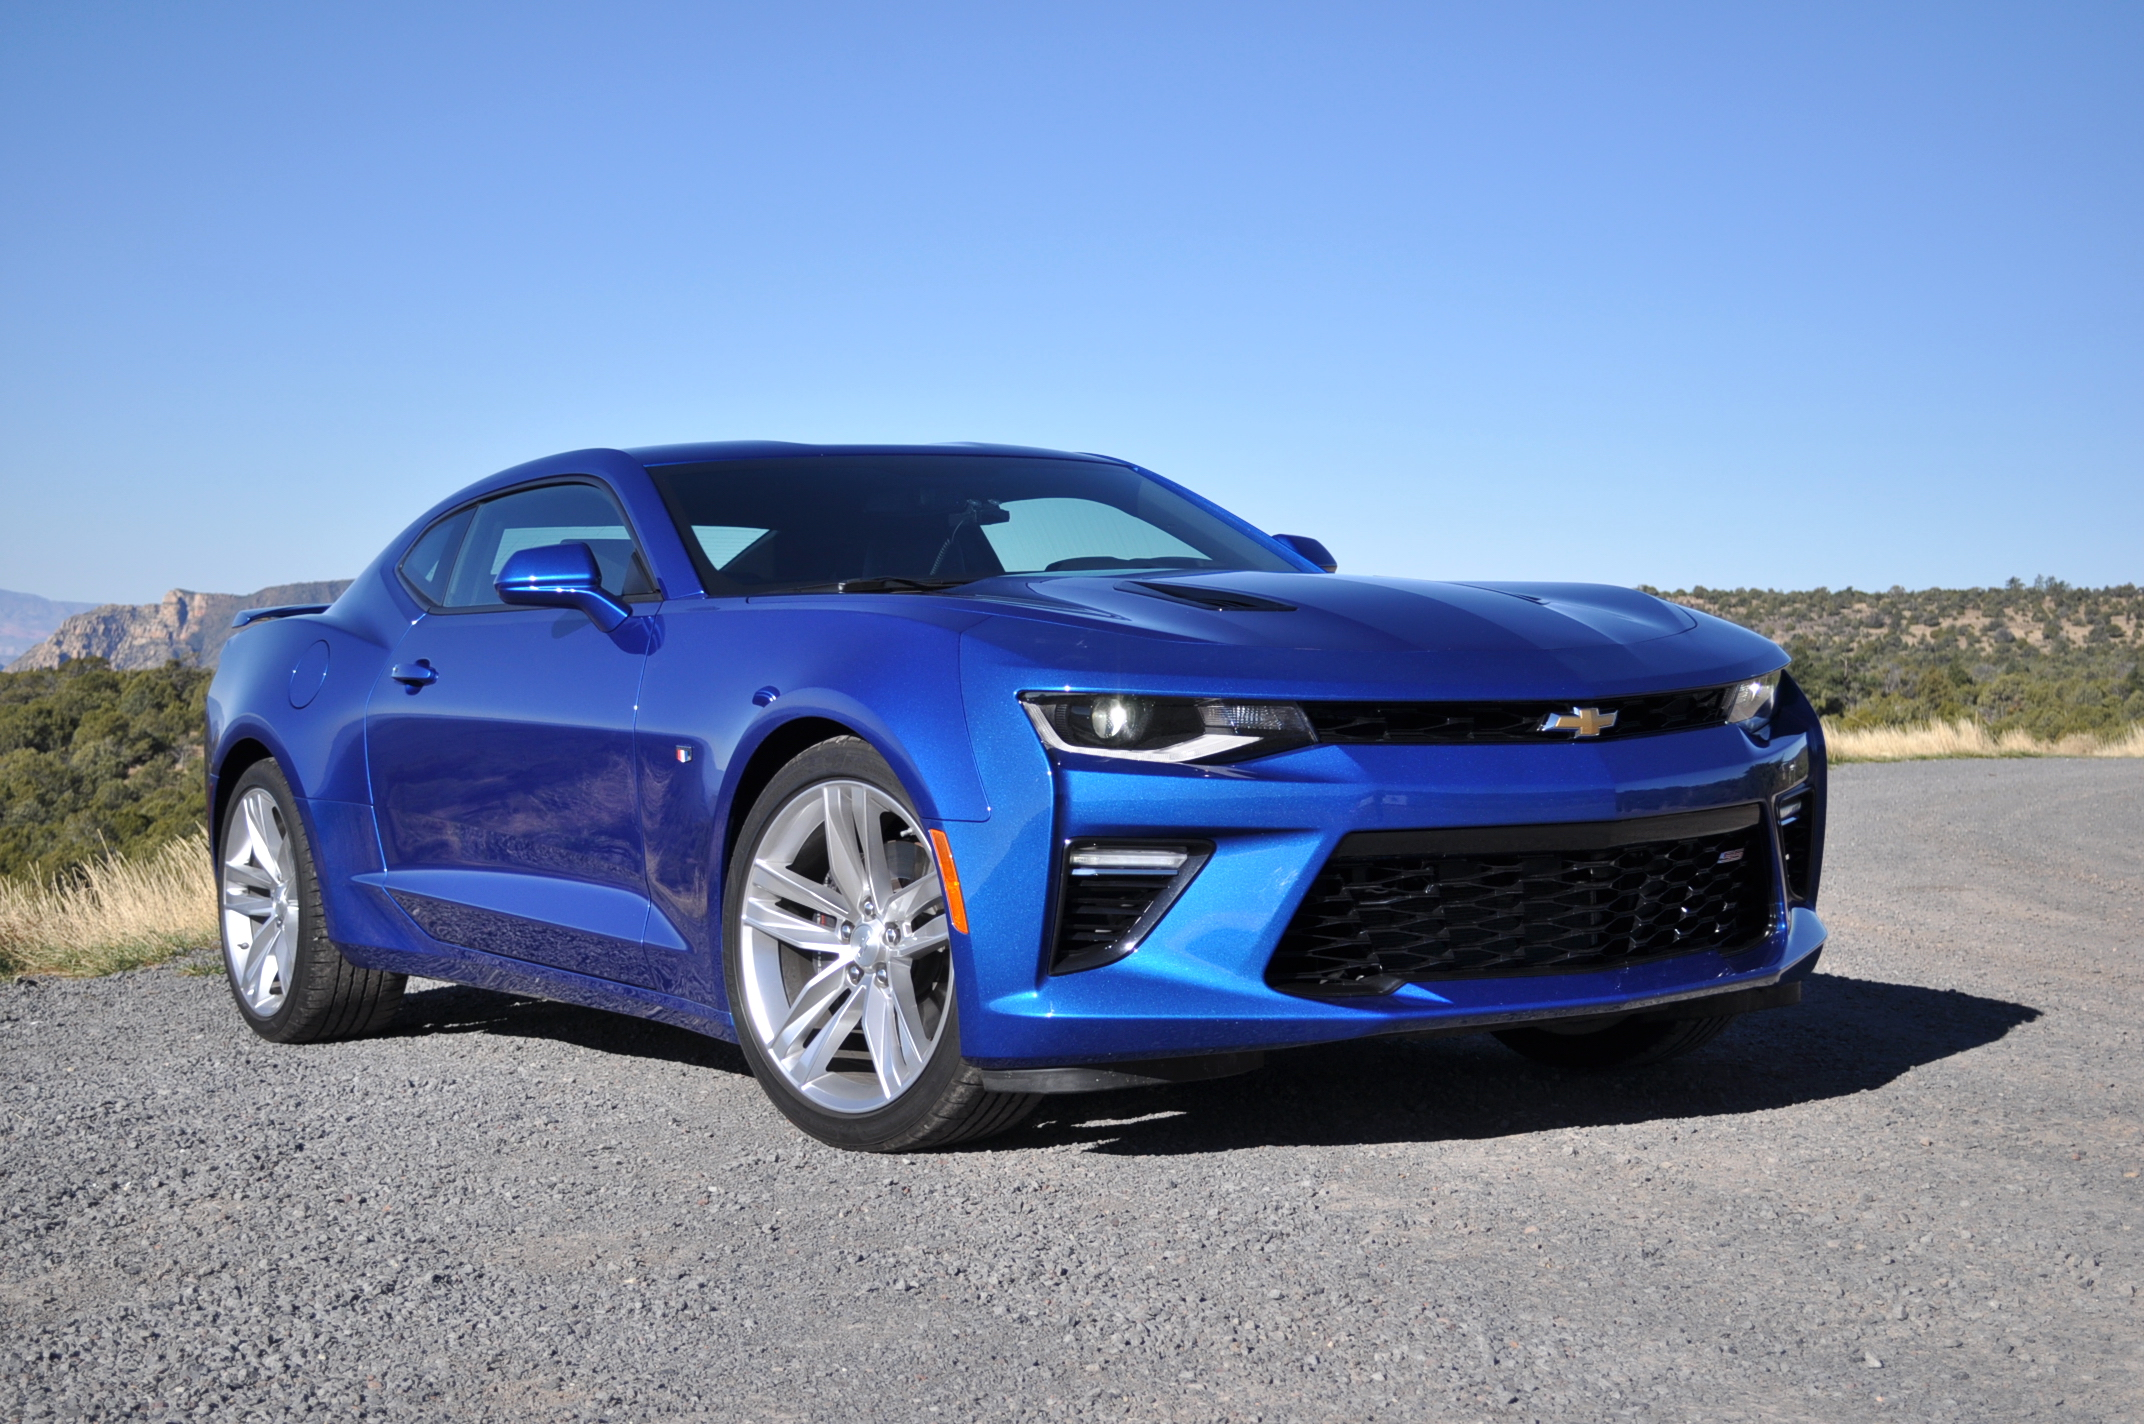 2016 chevrolet camaro ss video road test - Camaro ss ...